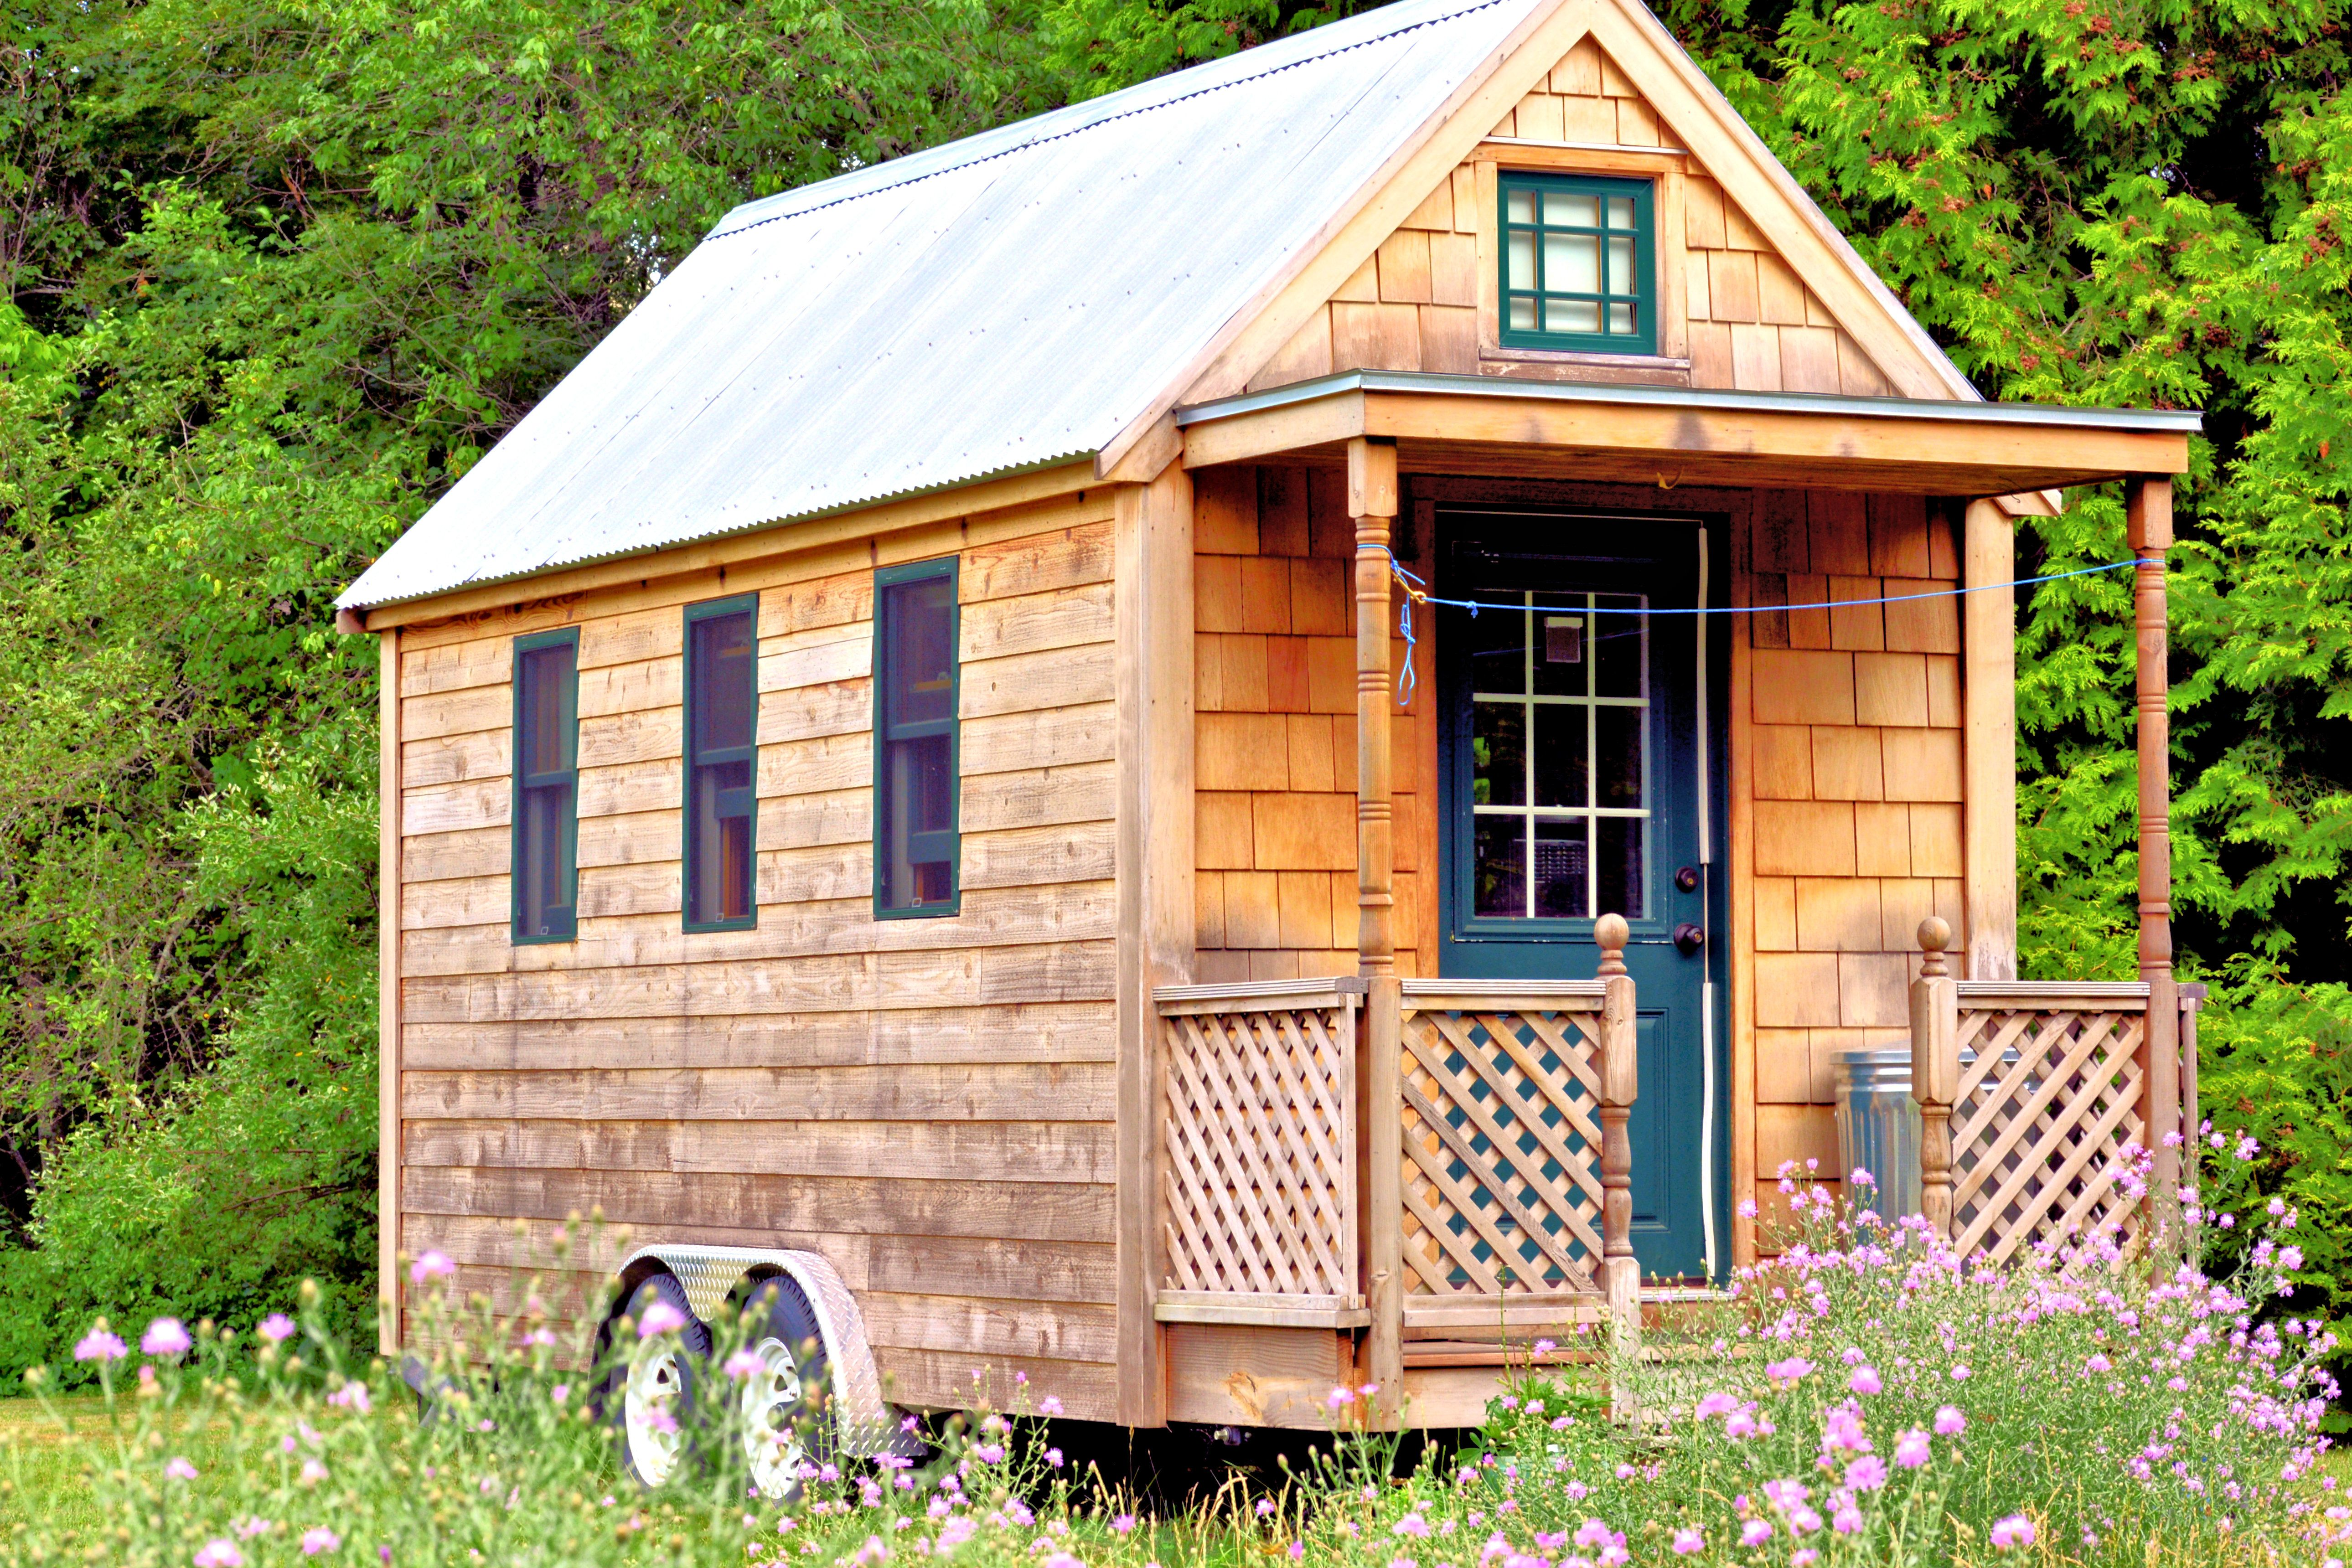 Tiny House Prix M2 small home plans that will get you excited to start building